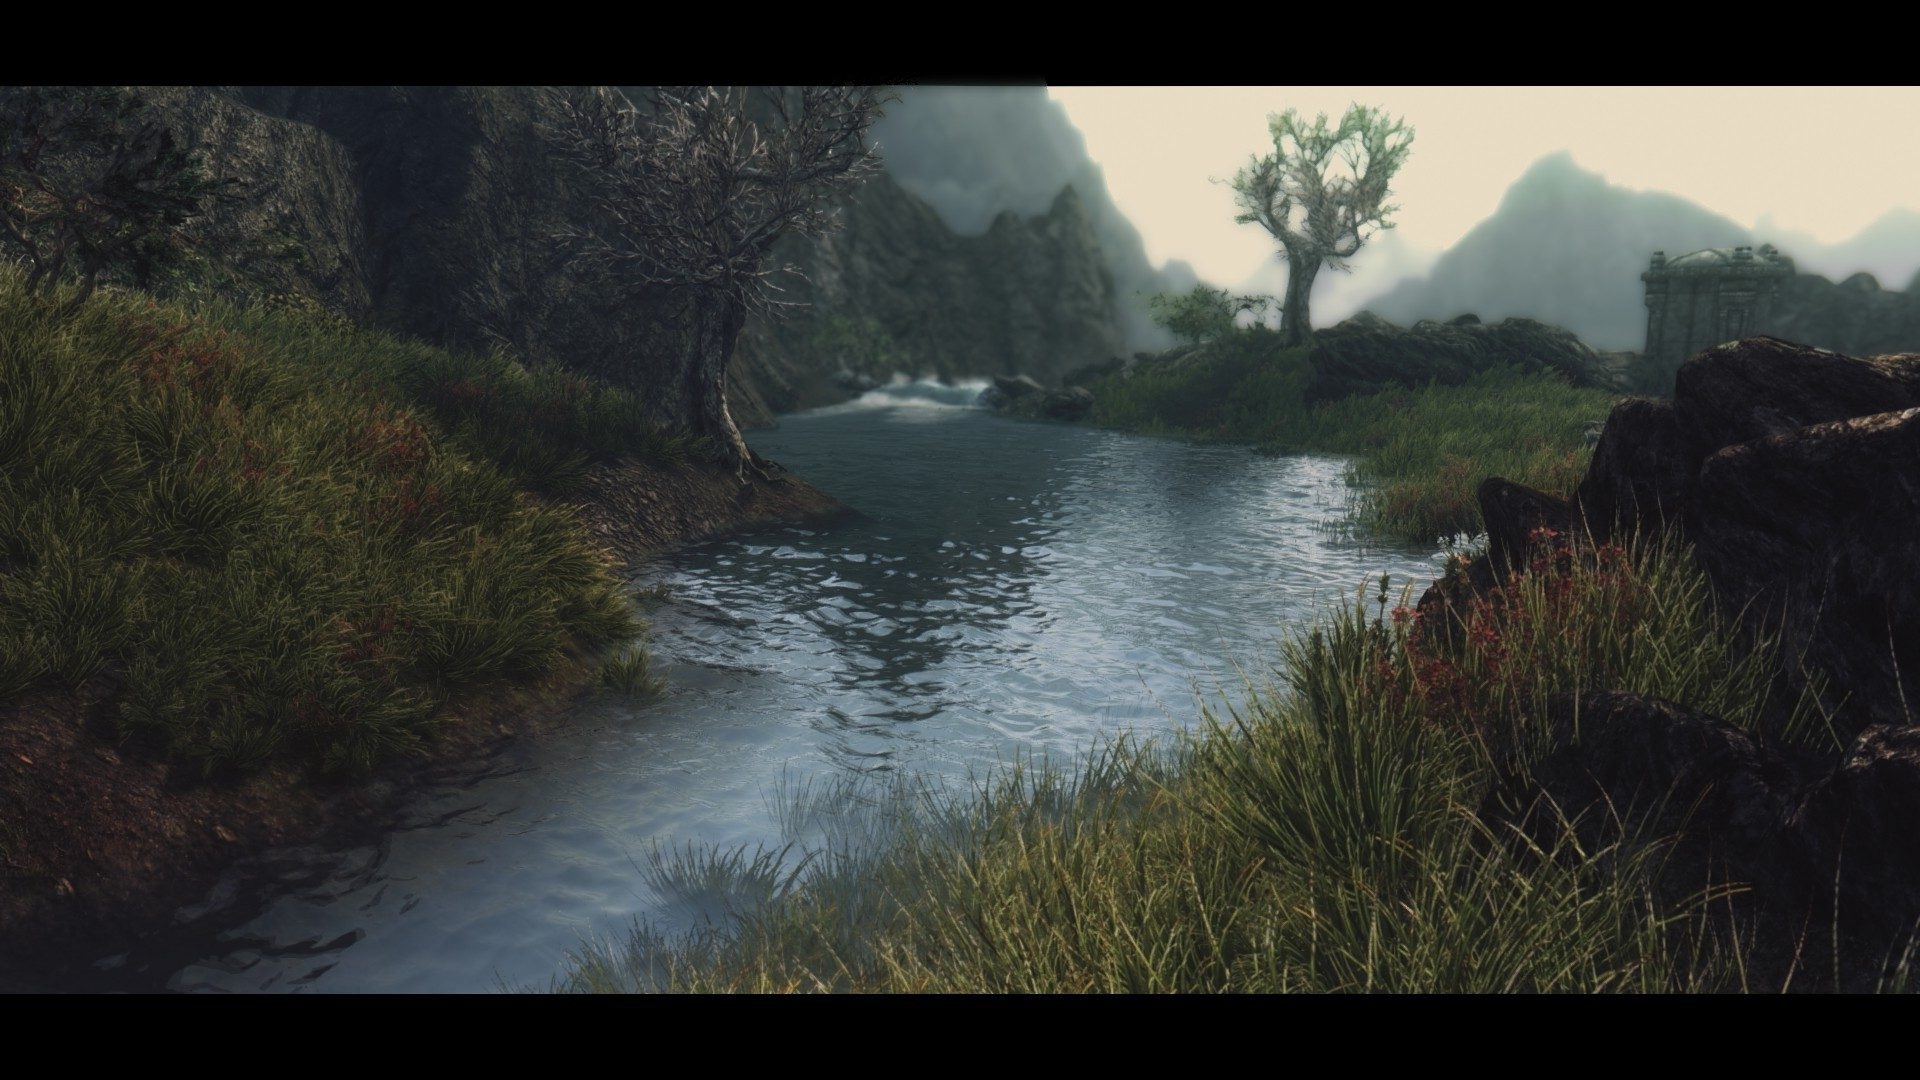 Skyrim Wallpaper Hd 1600x900 The Elder Scrolls V Skyrim Landscape River Wallpapers